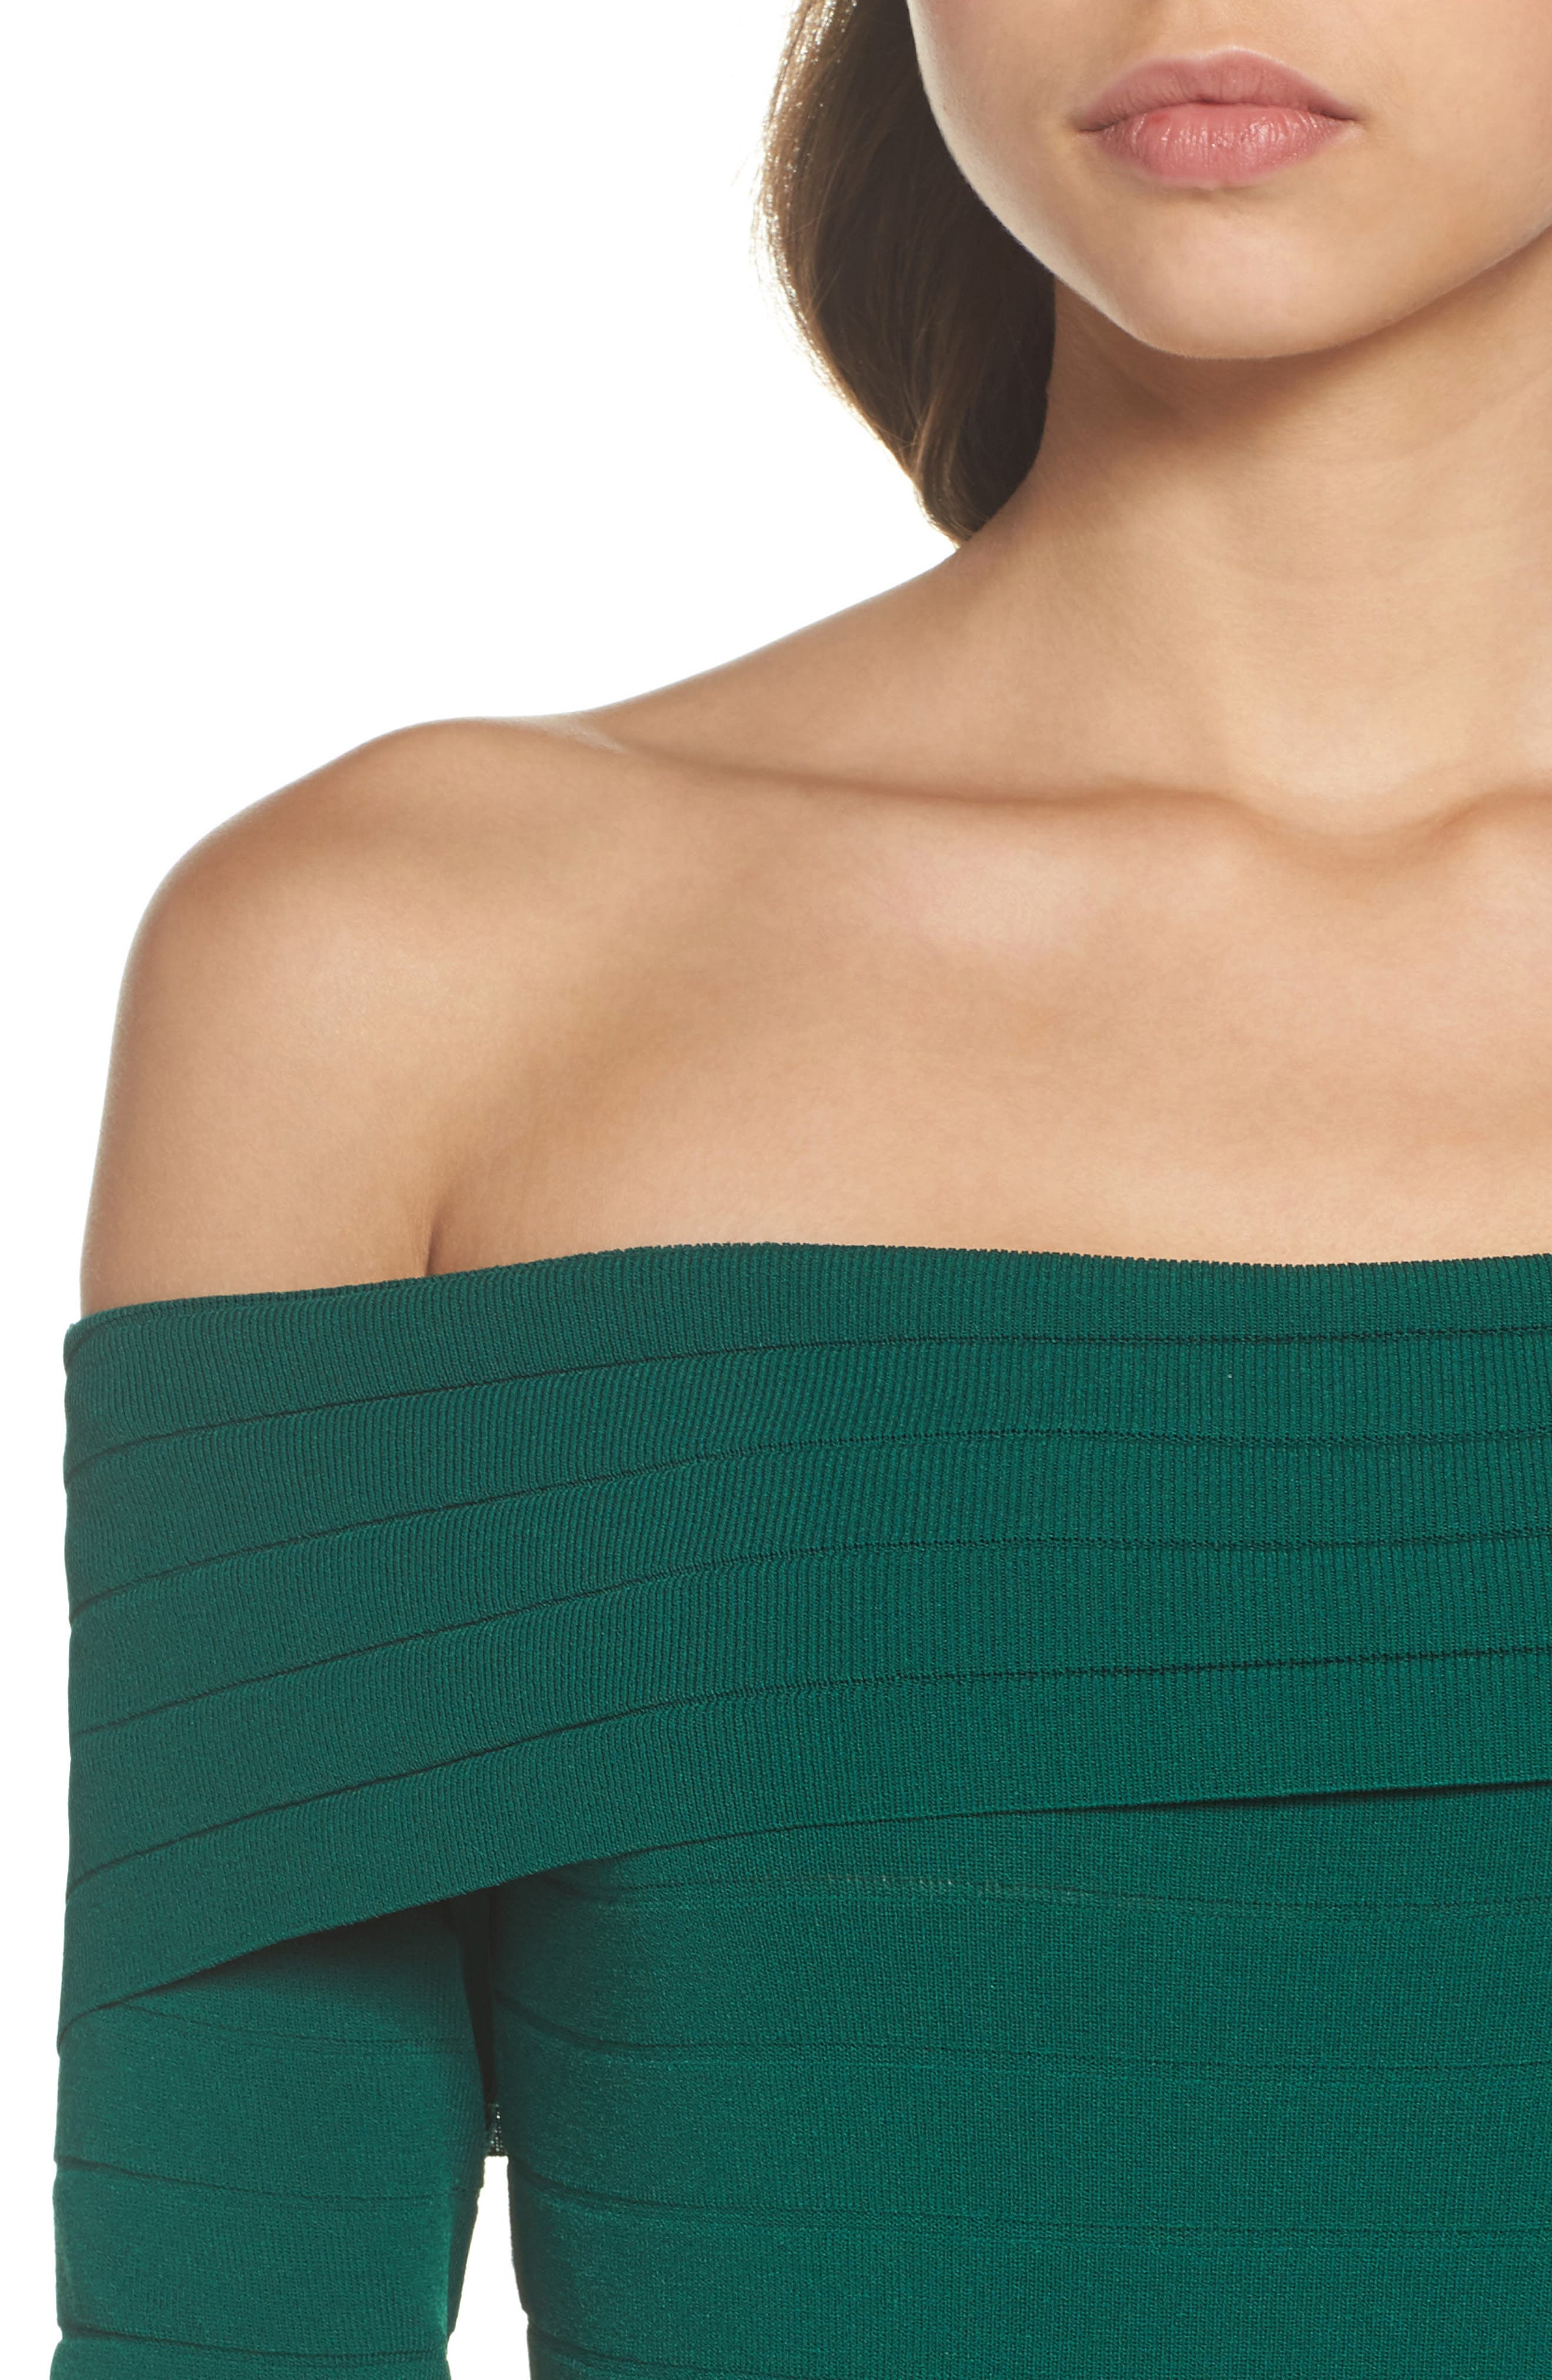 Bandage Midi Dress,                             Alternate thumbnail 17, color,